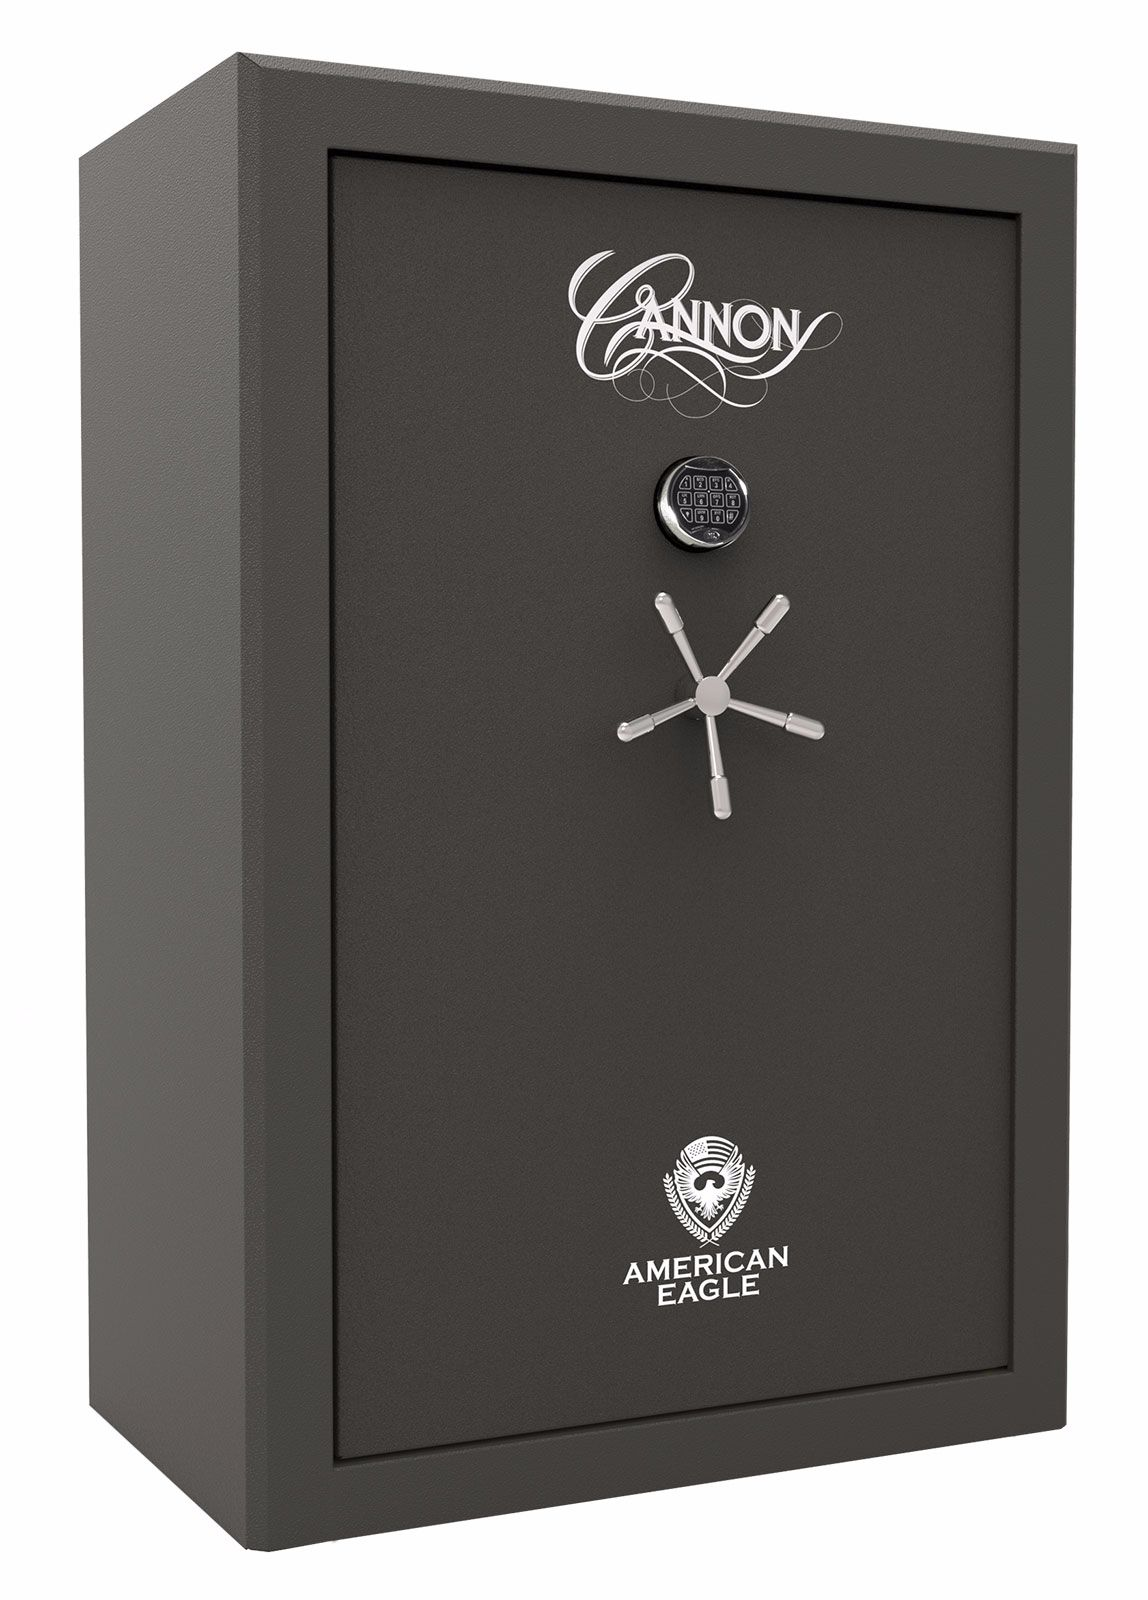 48 Gun Safe Amp 60 Minute Fire Rated Safe Cannon Safe